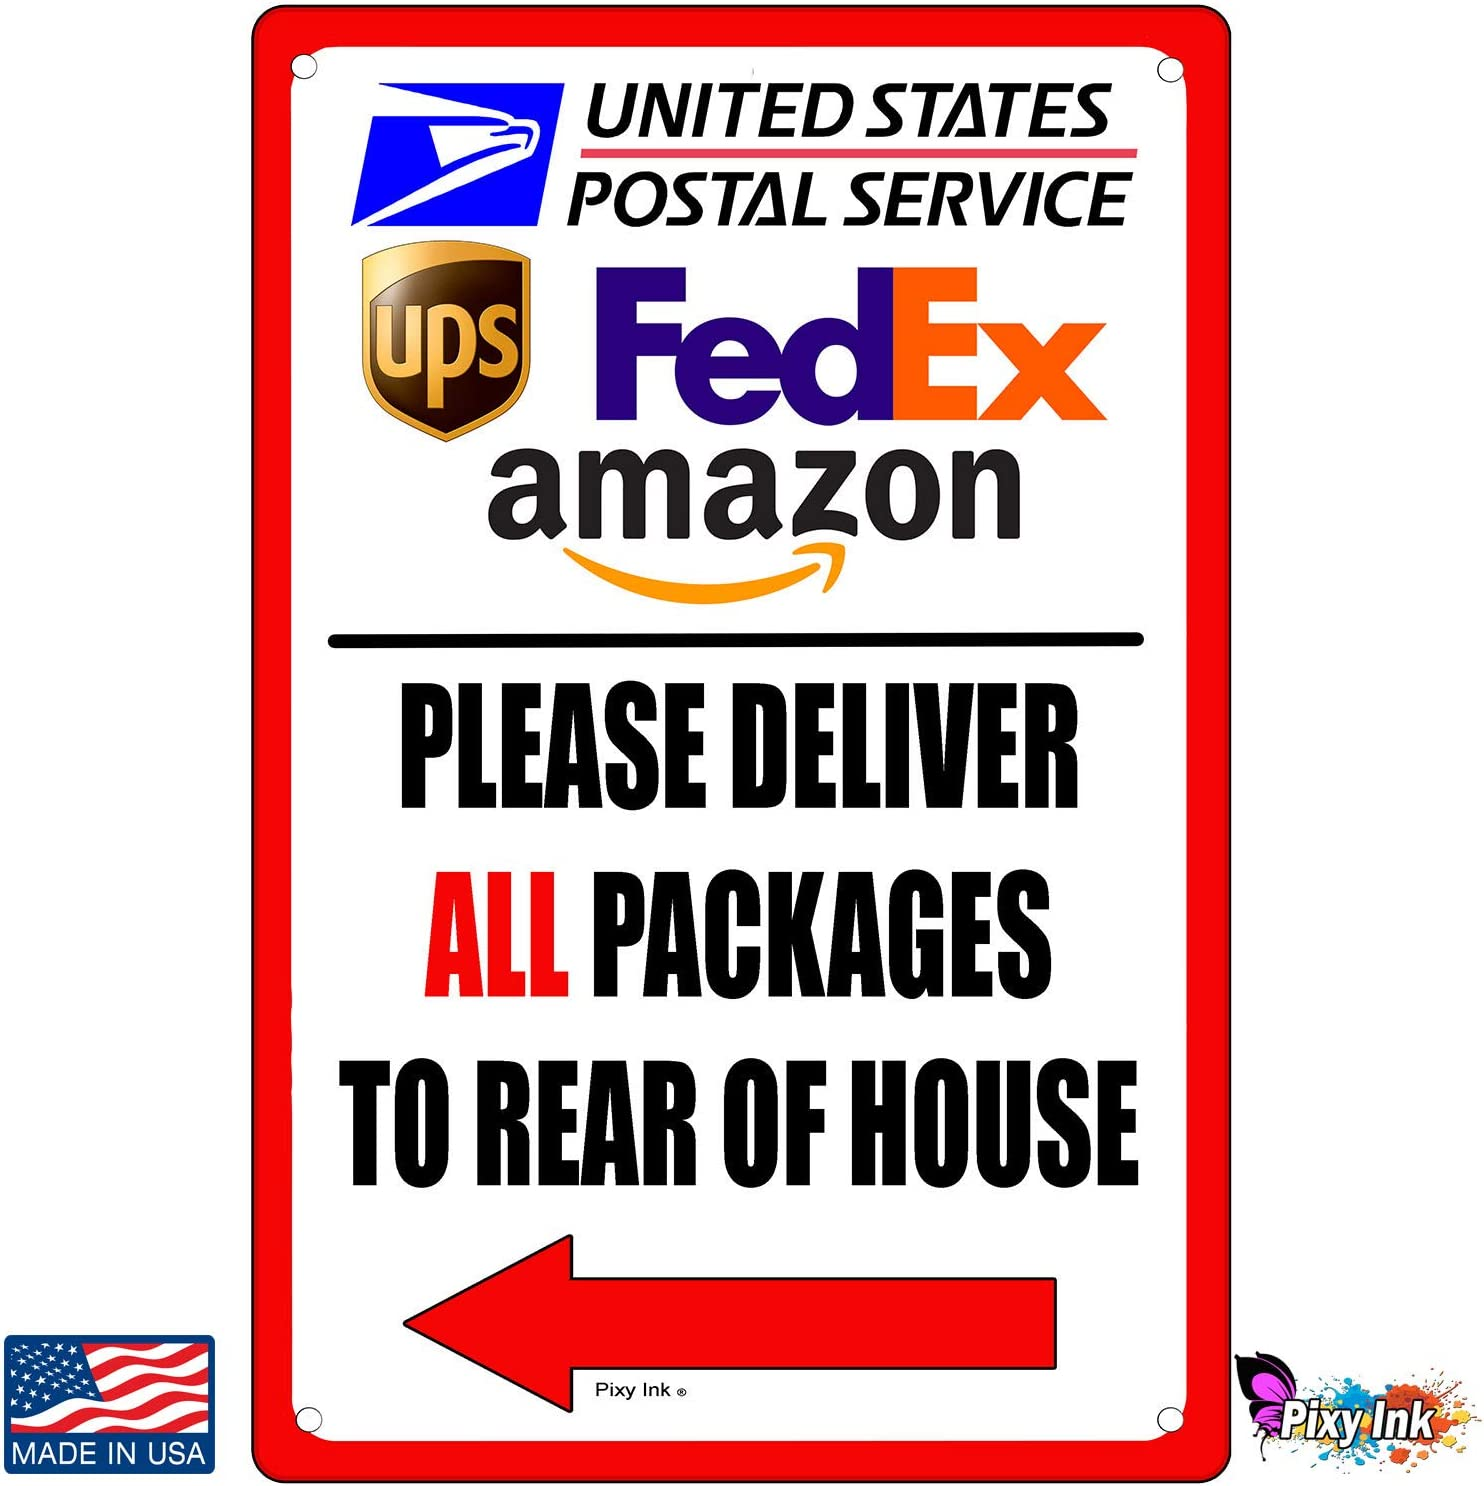 """A Pleasant Reminder to Delivery People to Follow Rust-Free Plastic at 12x8 0.06/"""" an Vivid Design Plus UV Protection to Last Longer Deliver All Packages to Side Door Sign Perfect Gift"""